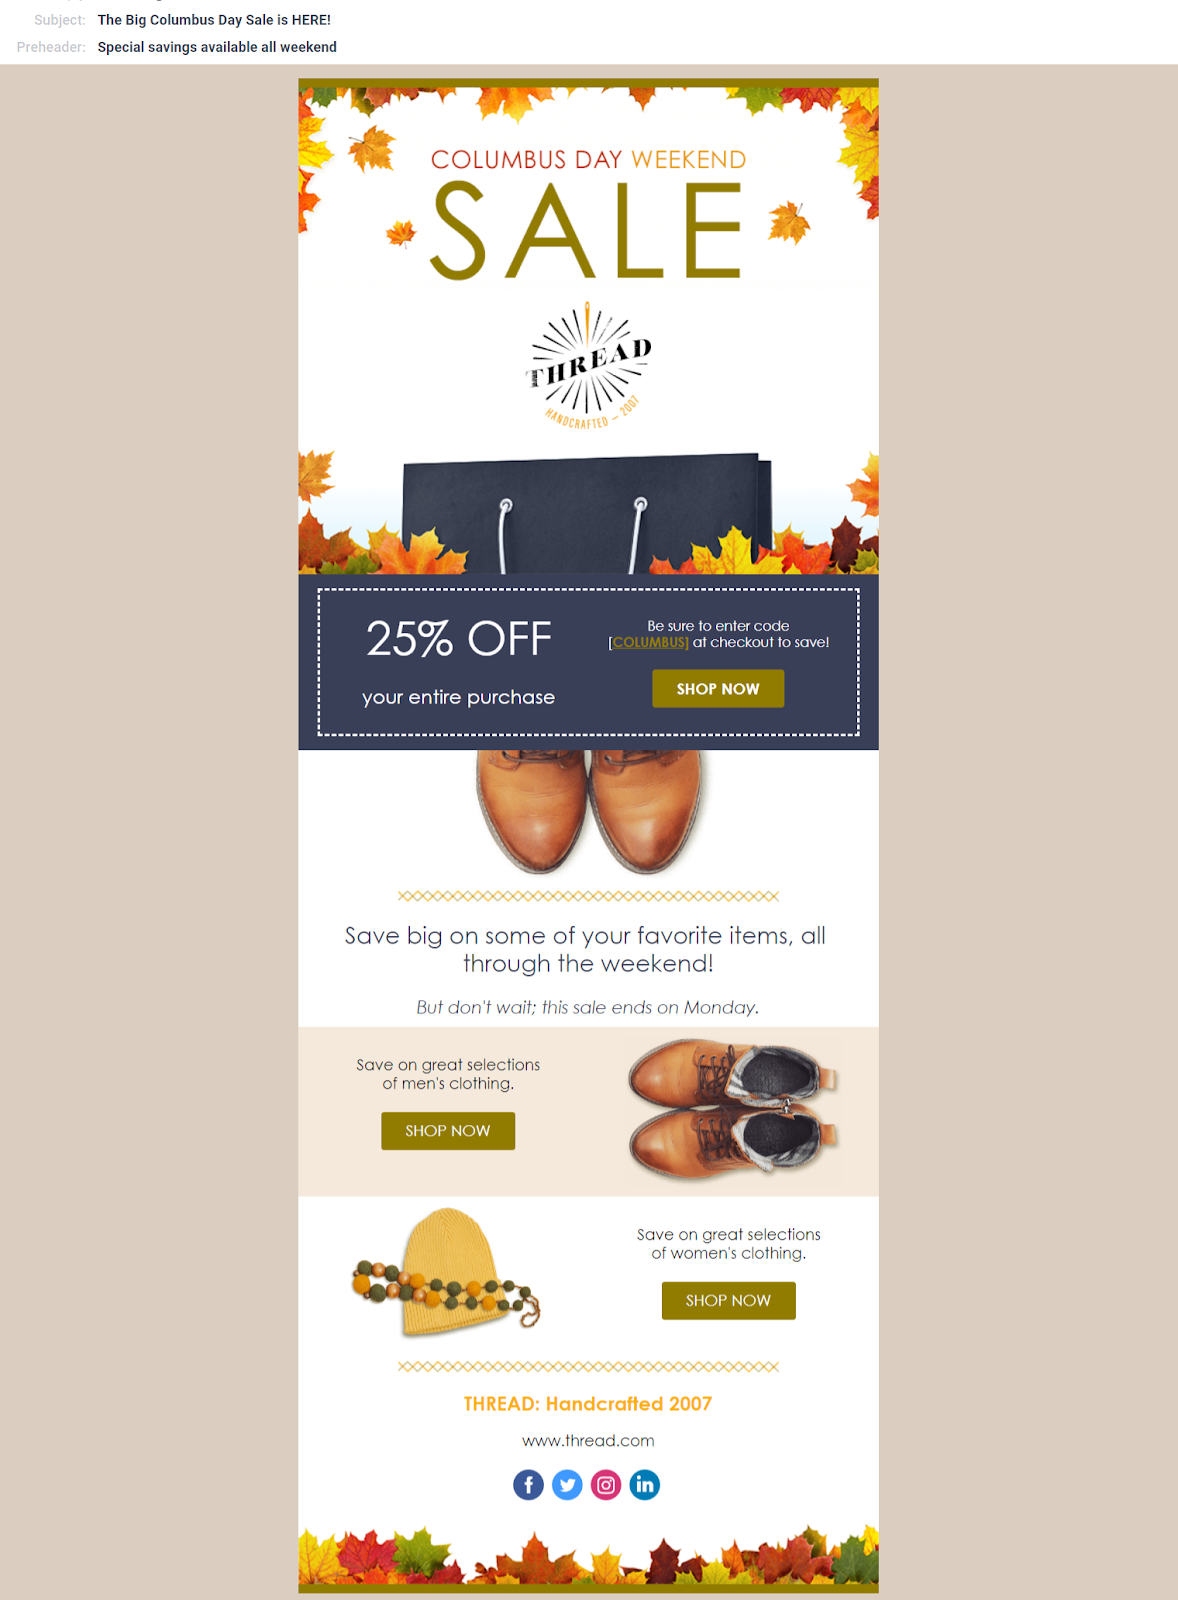 7 Tips To Maximize The Autumn Season With Holiday Email Templates Email Templates Holiday Emails Holiday Email Campaigns